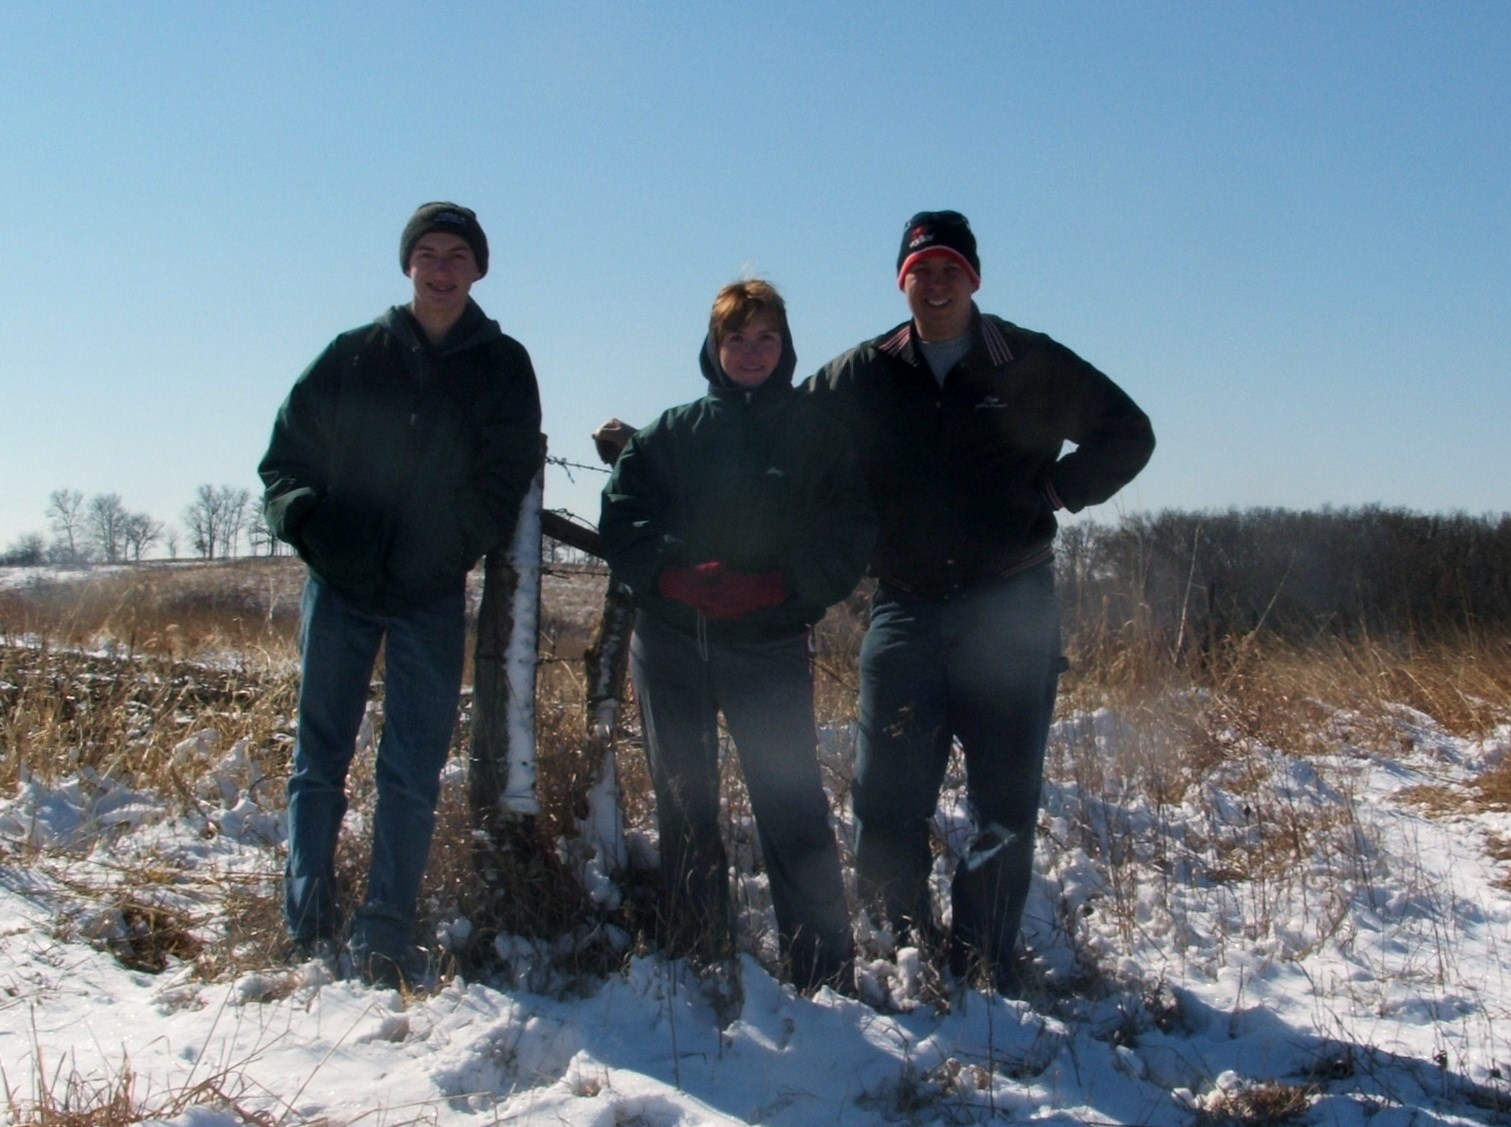 Here, I'm posing with Amy and Forest on our farm the day of closing back in 2012.